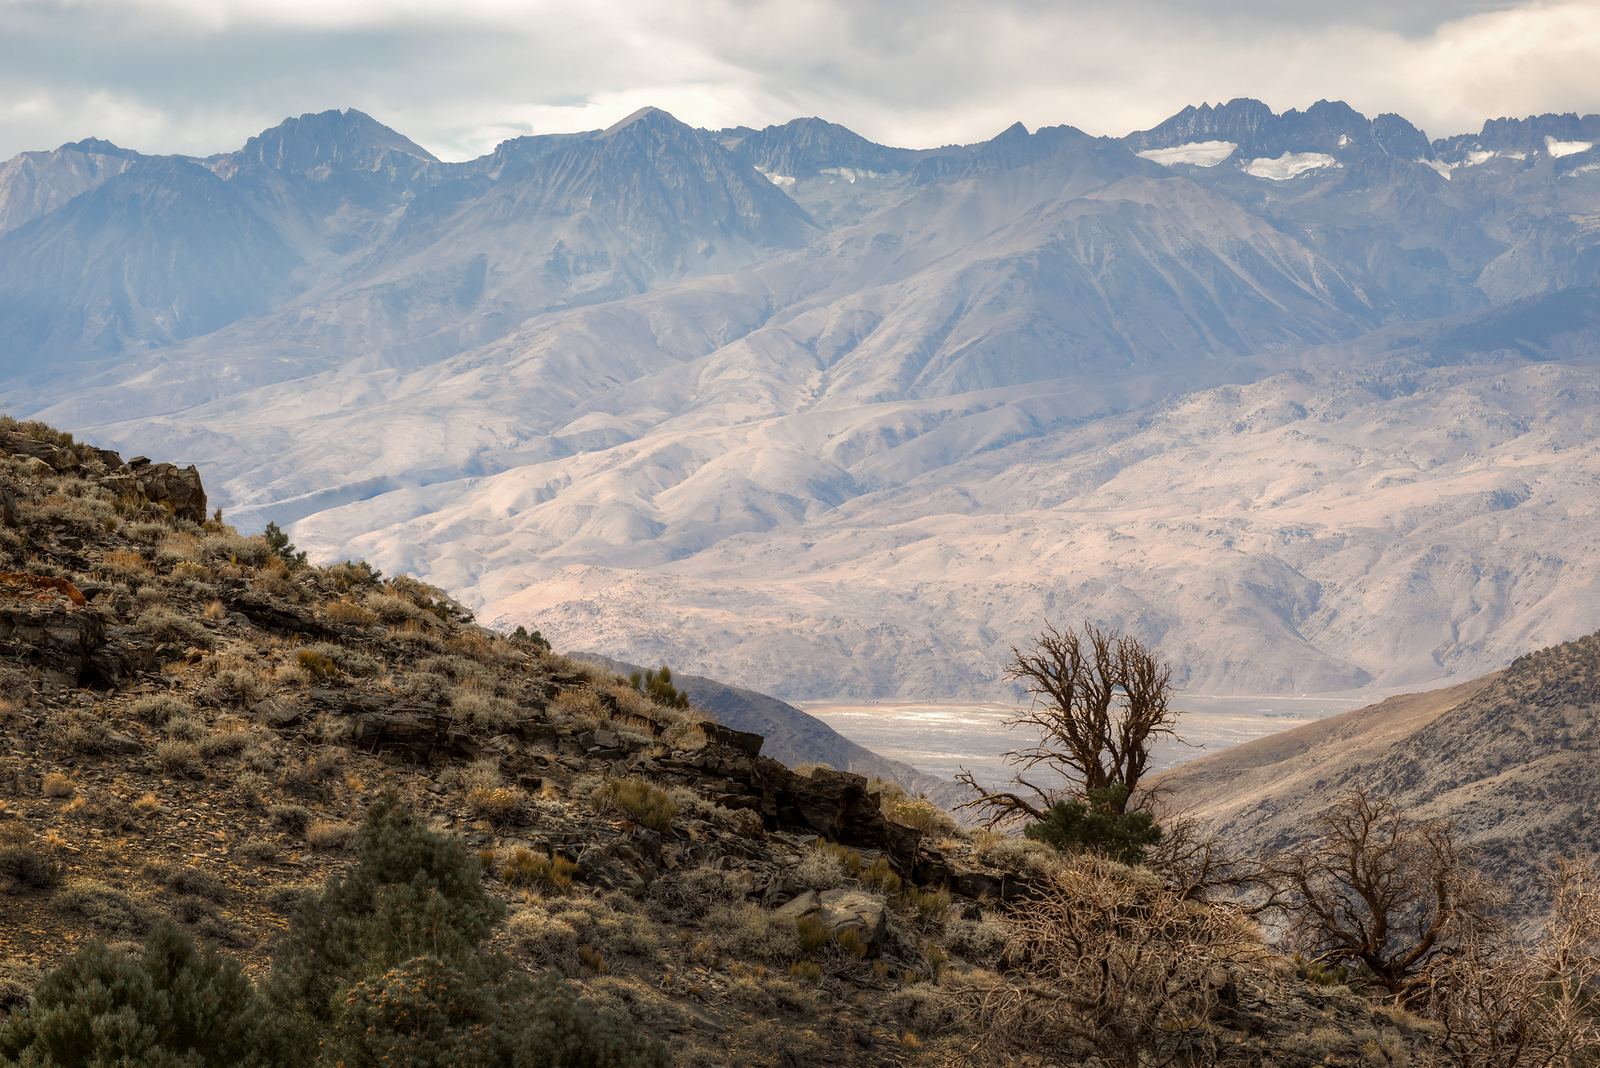 Owens Valley & The Palisades, California